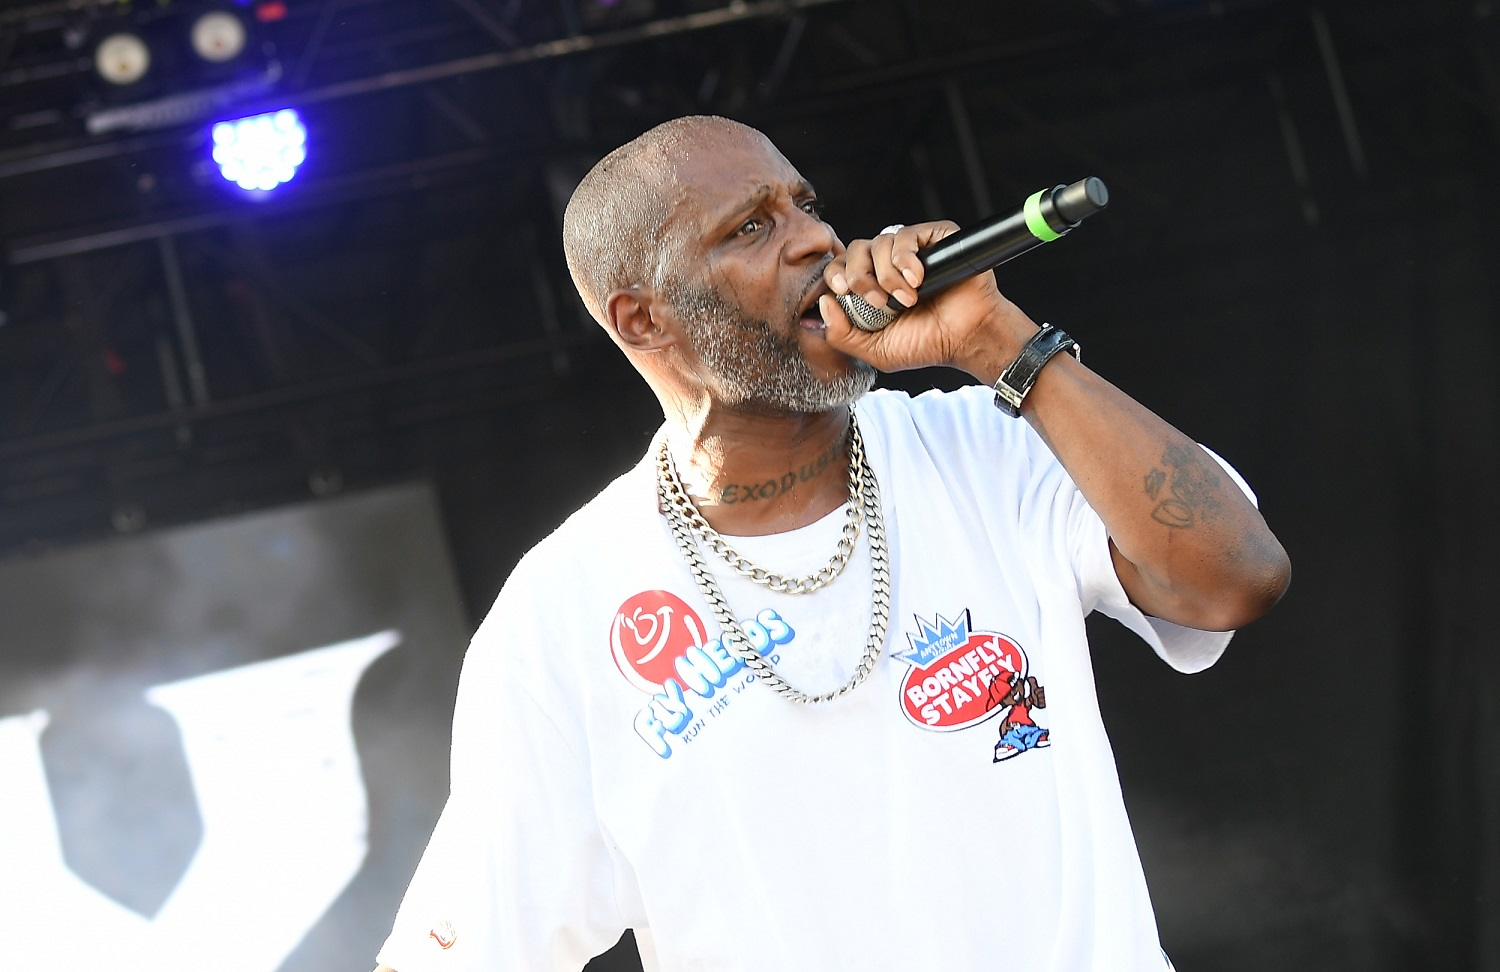 Rapper DMX was an influence on LeBron James' early life